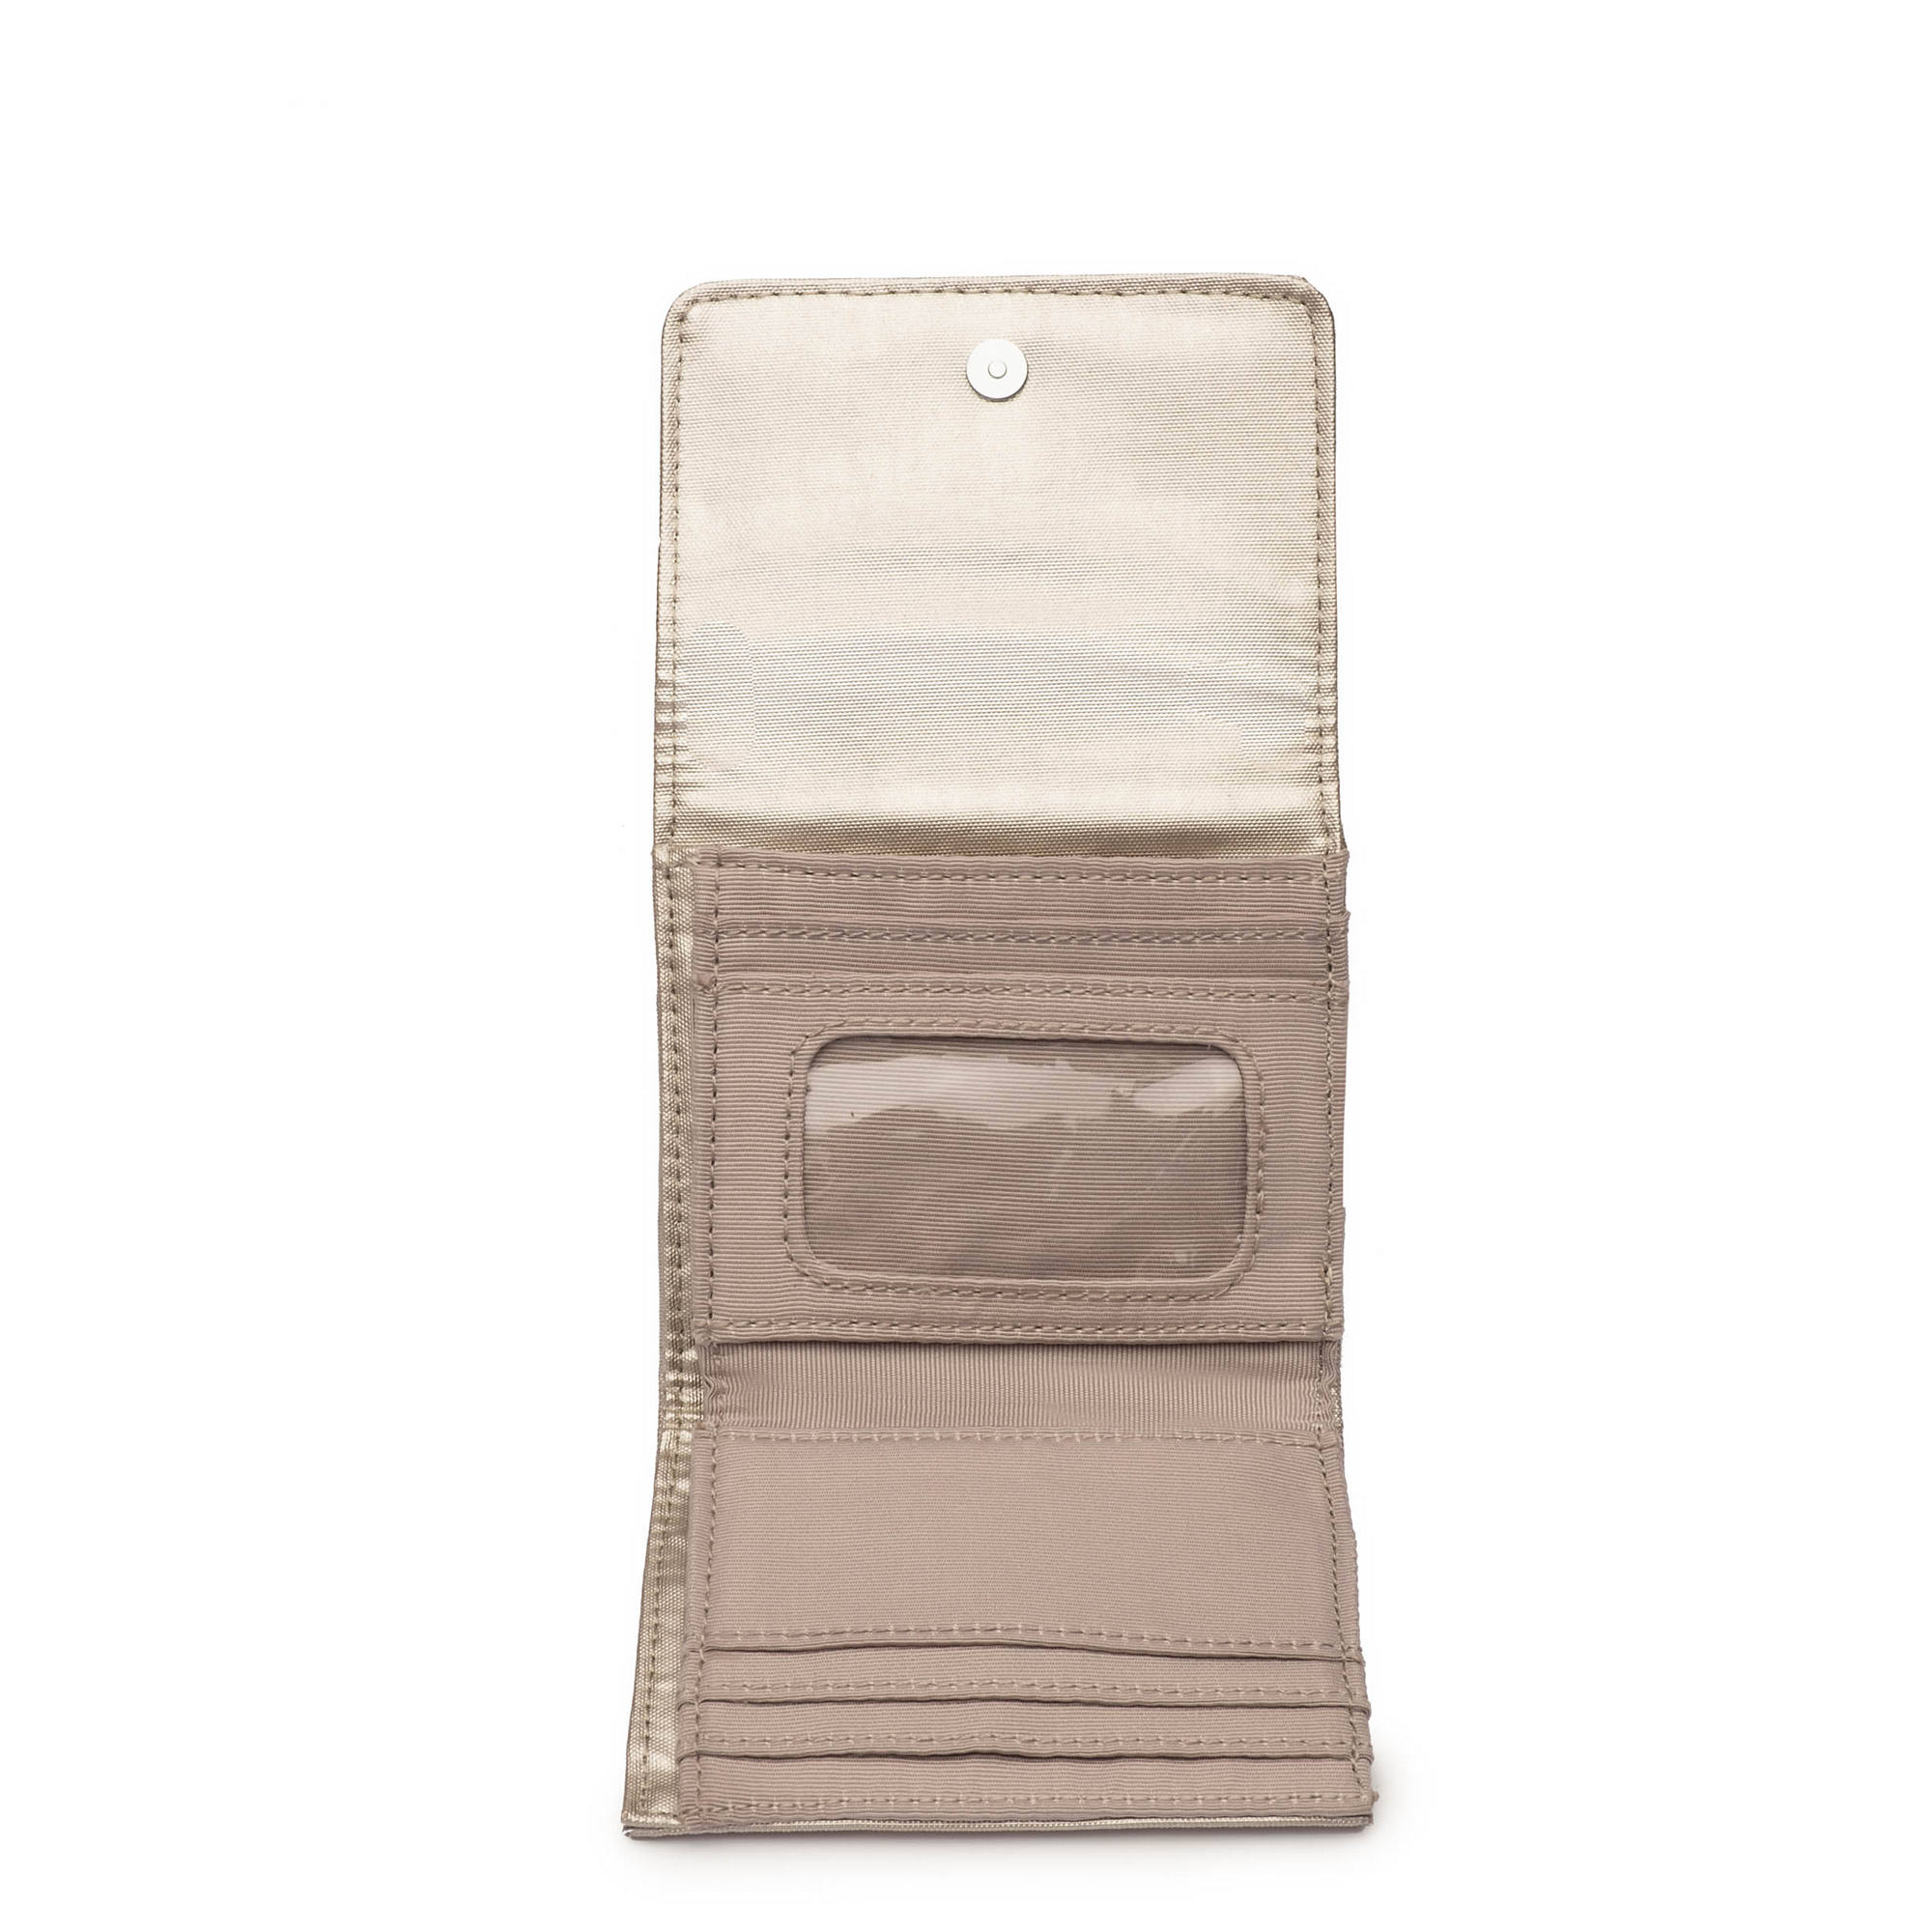 Kipling-Cece-Metallic-Small-Wallet thumbnail 9